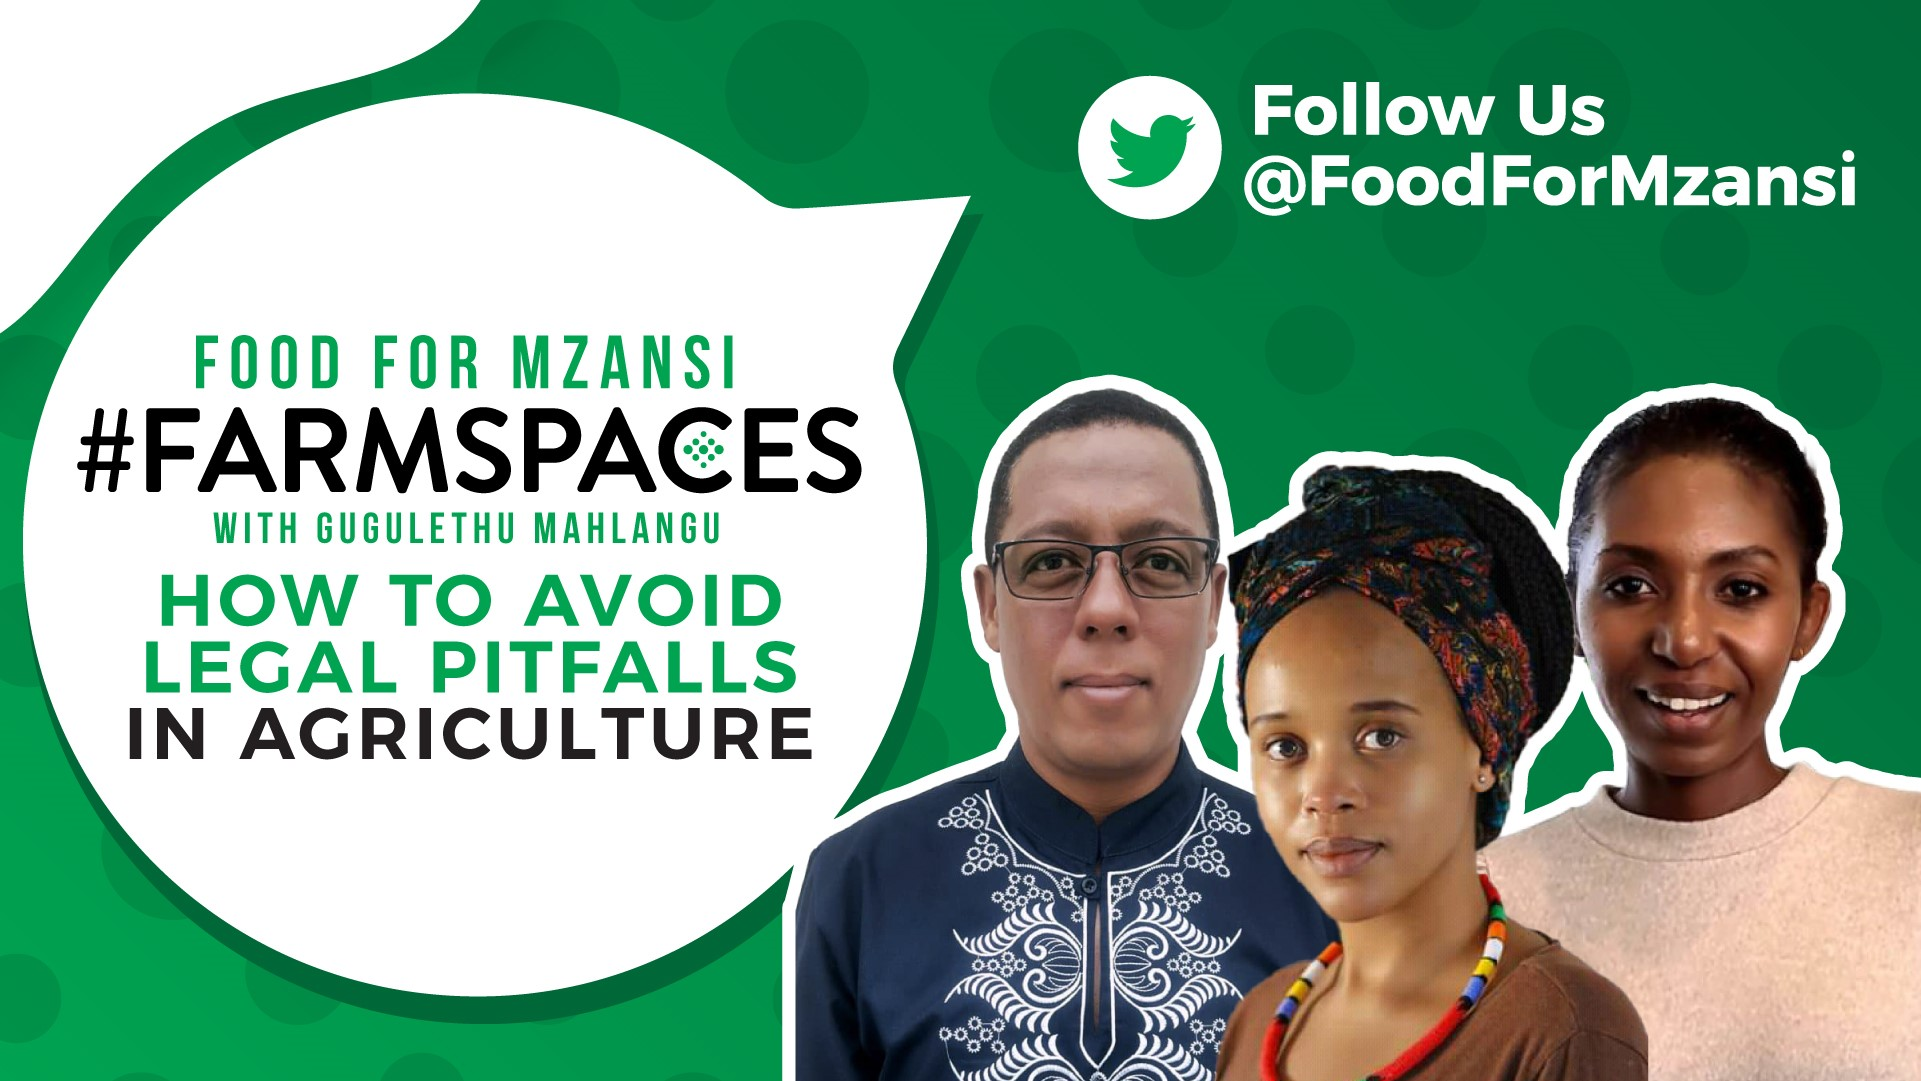 Join us at 6 pm this evening to learn more about legal pitfalls in agriculture. Photo: Supplied/Food for Mzansi.